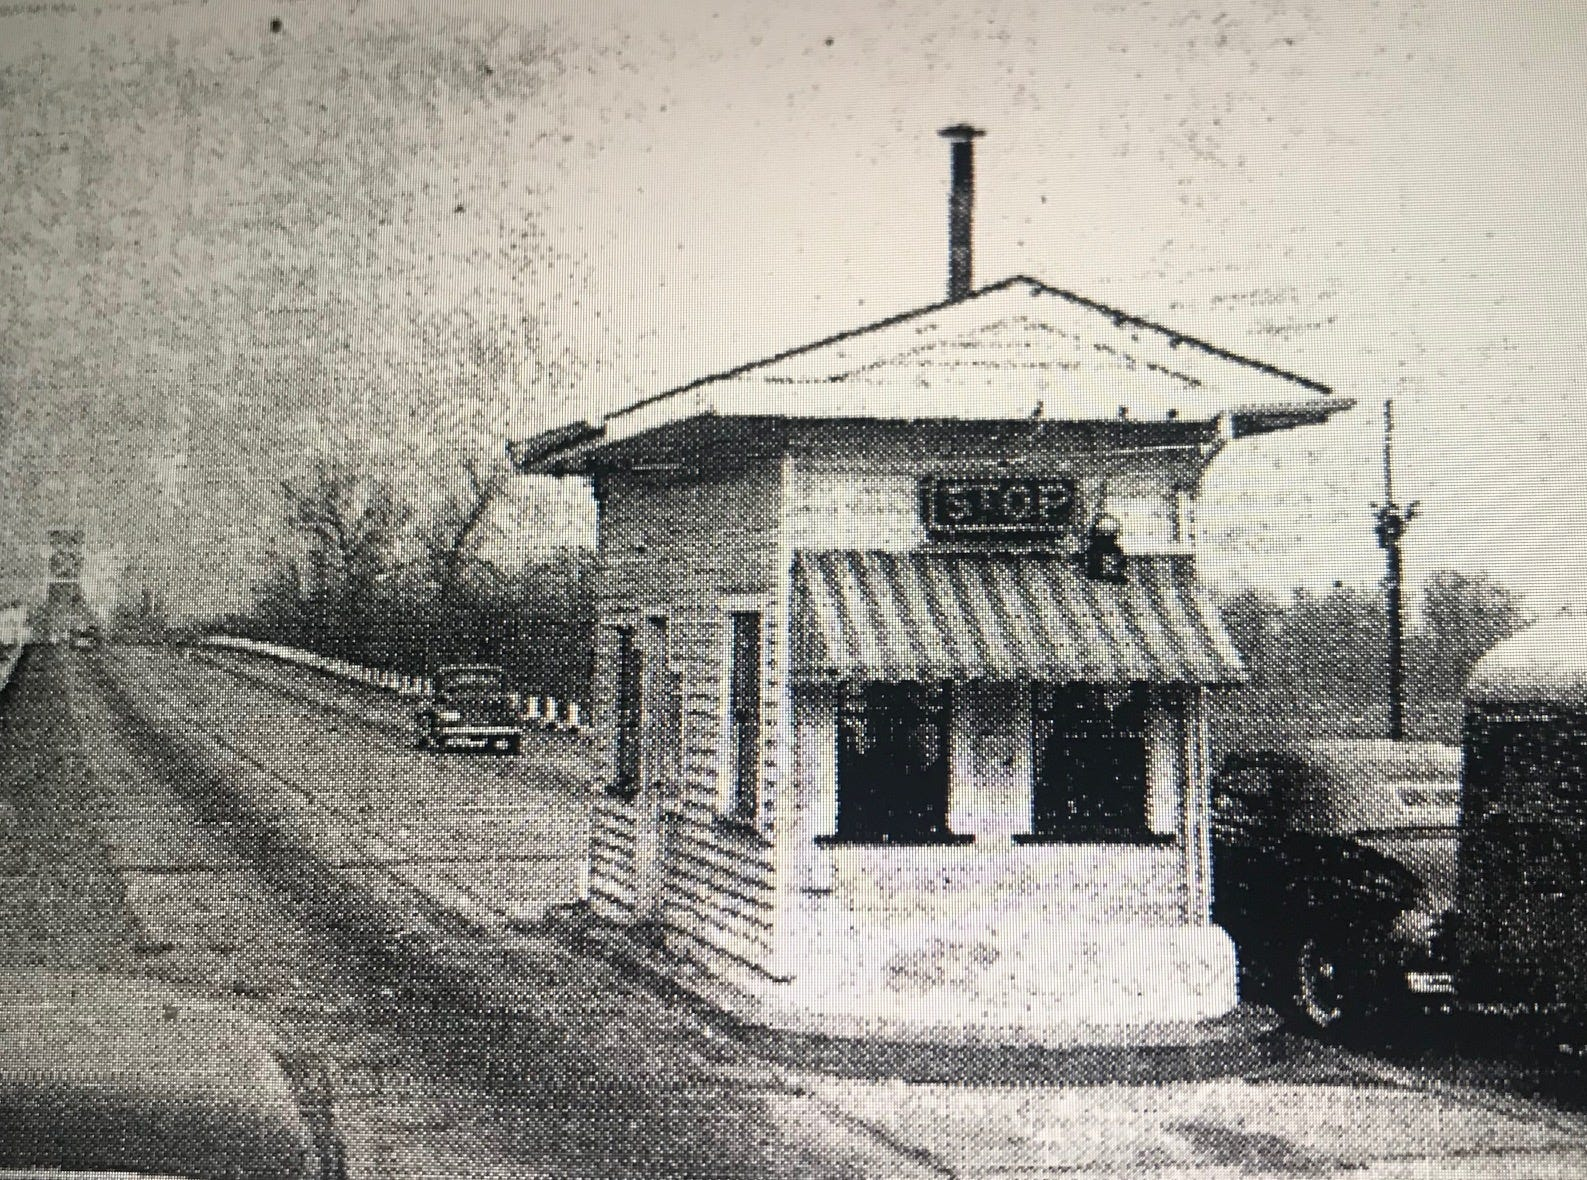 The toll booth that once stood at the north end of the Ohio River bridge between Evansville and Henderson.